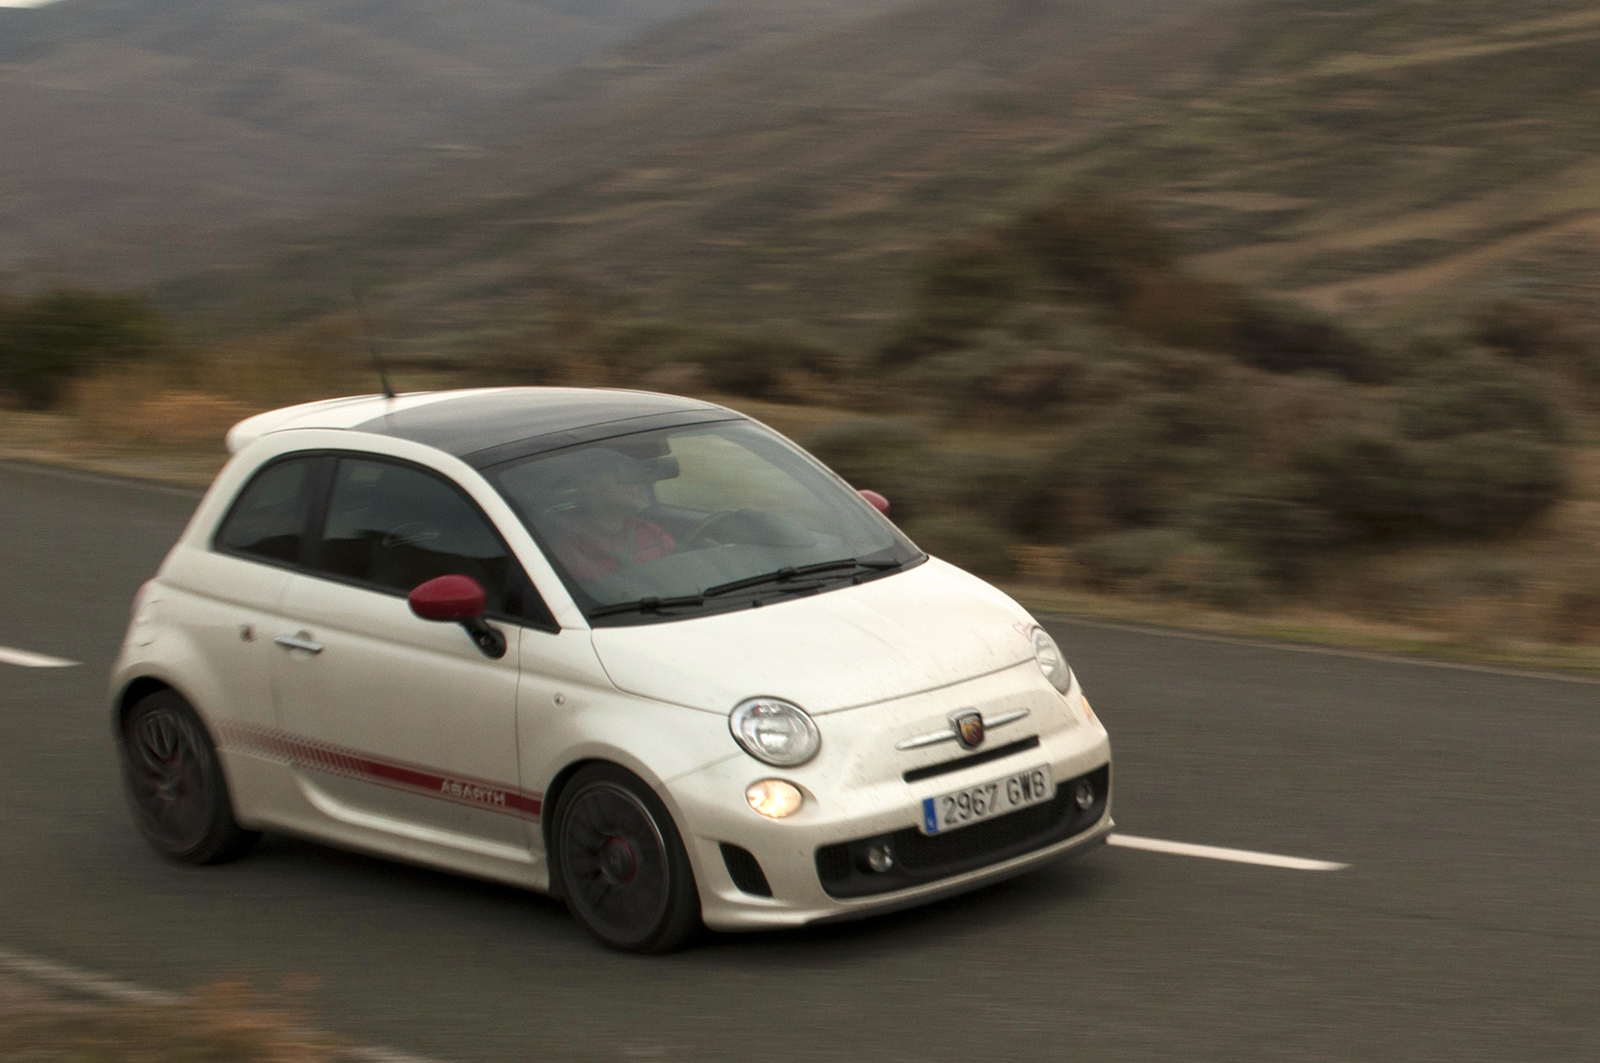 Fiat 500 long term reliability